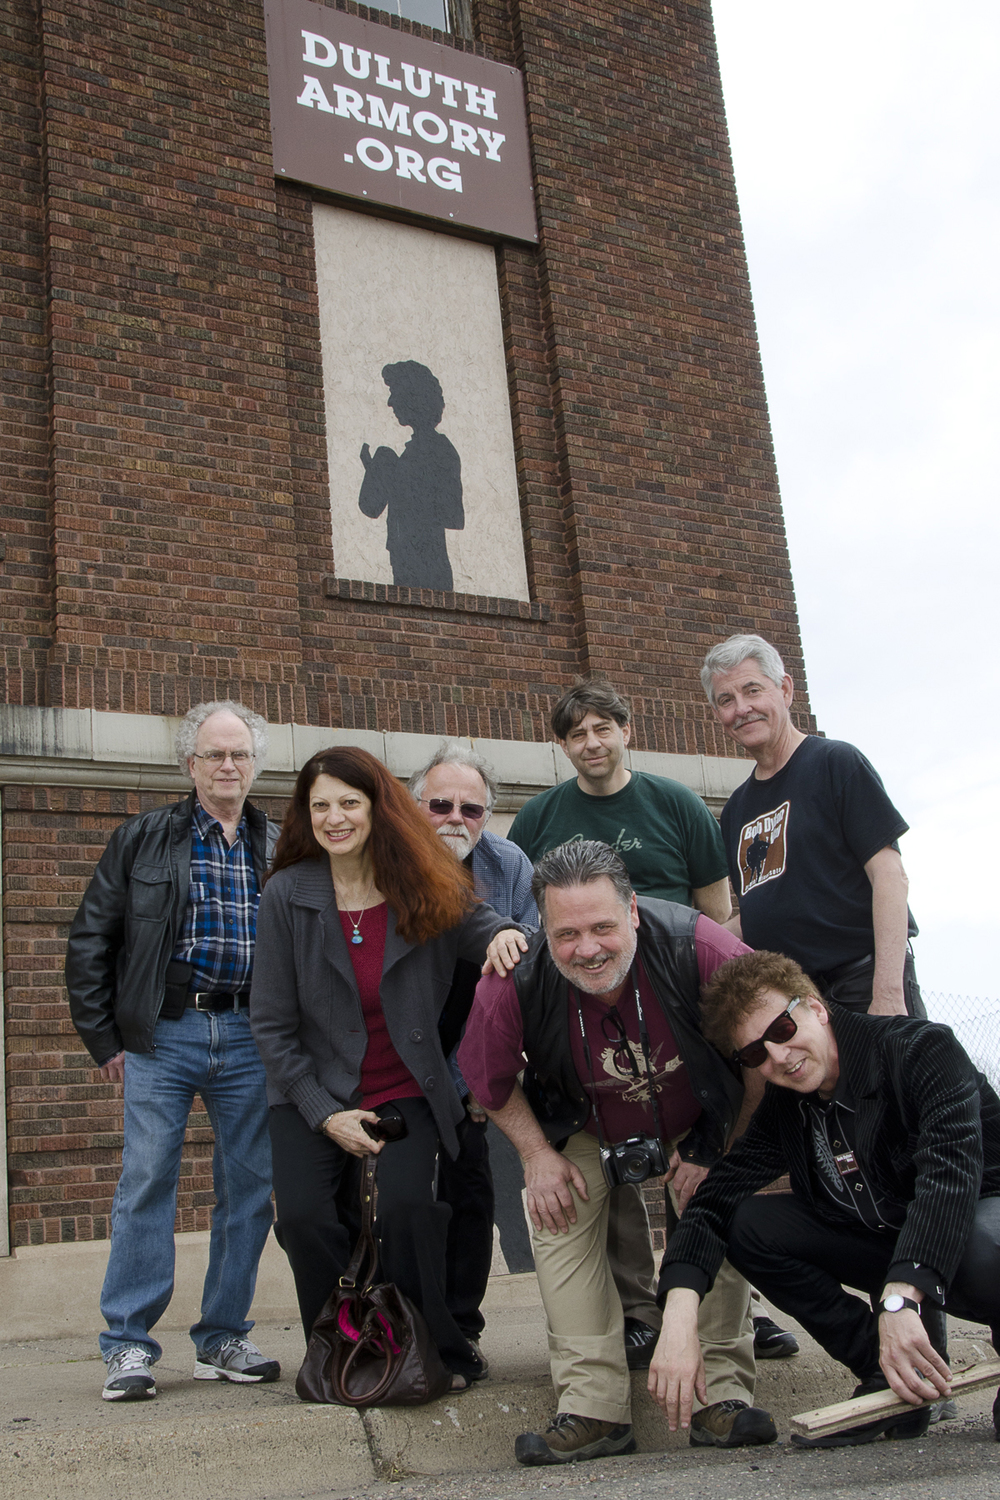 Bill Pagel, Scarlet Rivera, Gene LaFond, John Bushey, Ed Newman, Nelson T. French and Magic Marc / Outside The Armory / Duluth, Minnesota / May 18th, 2014 / Photo by Michael K. Anderson